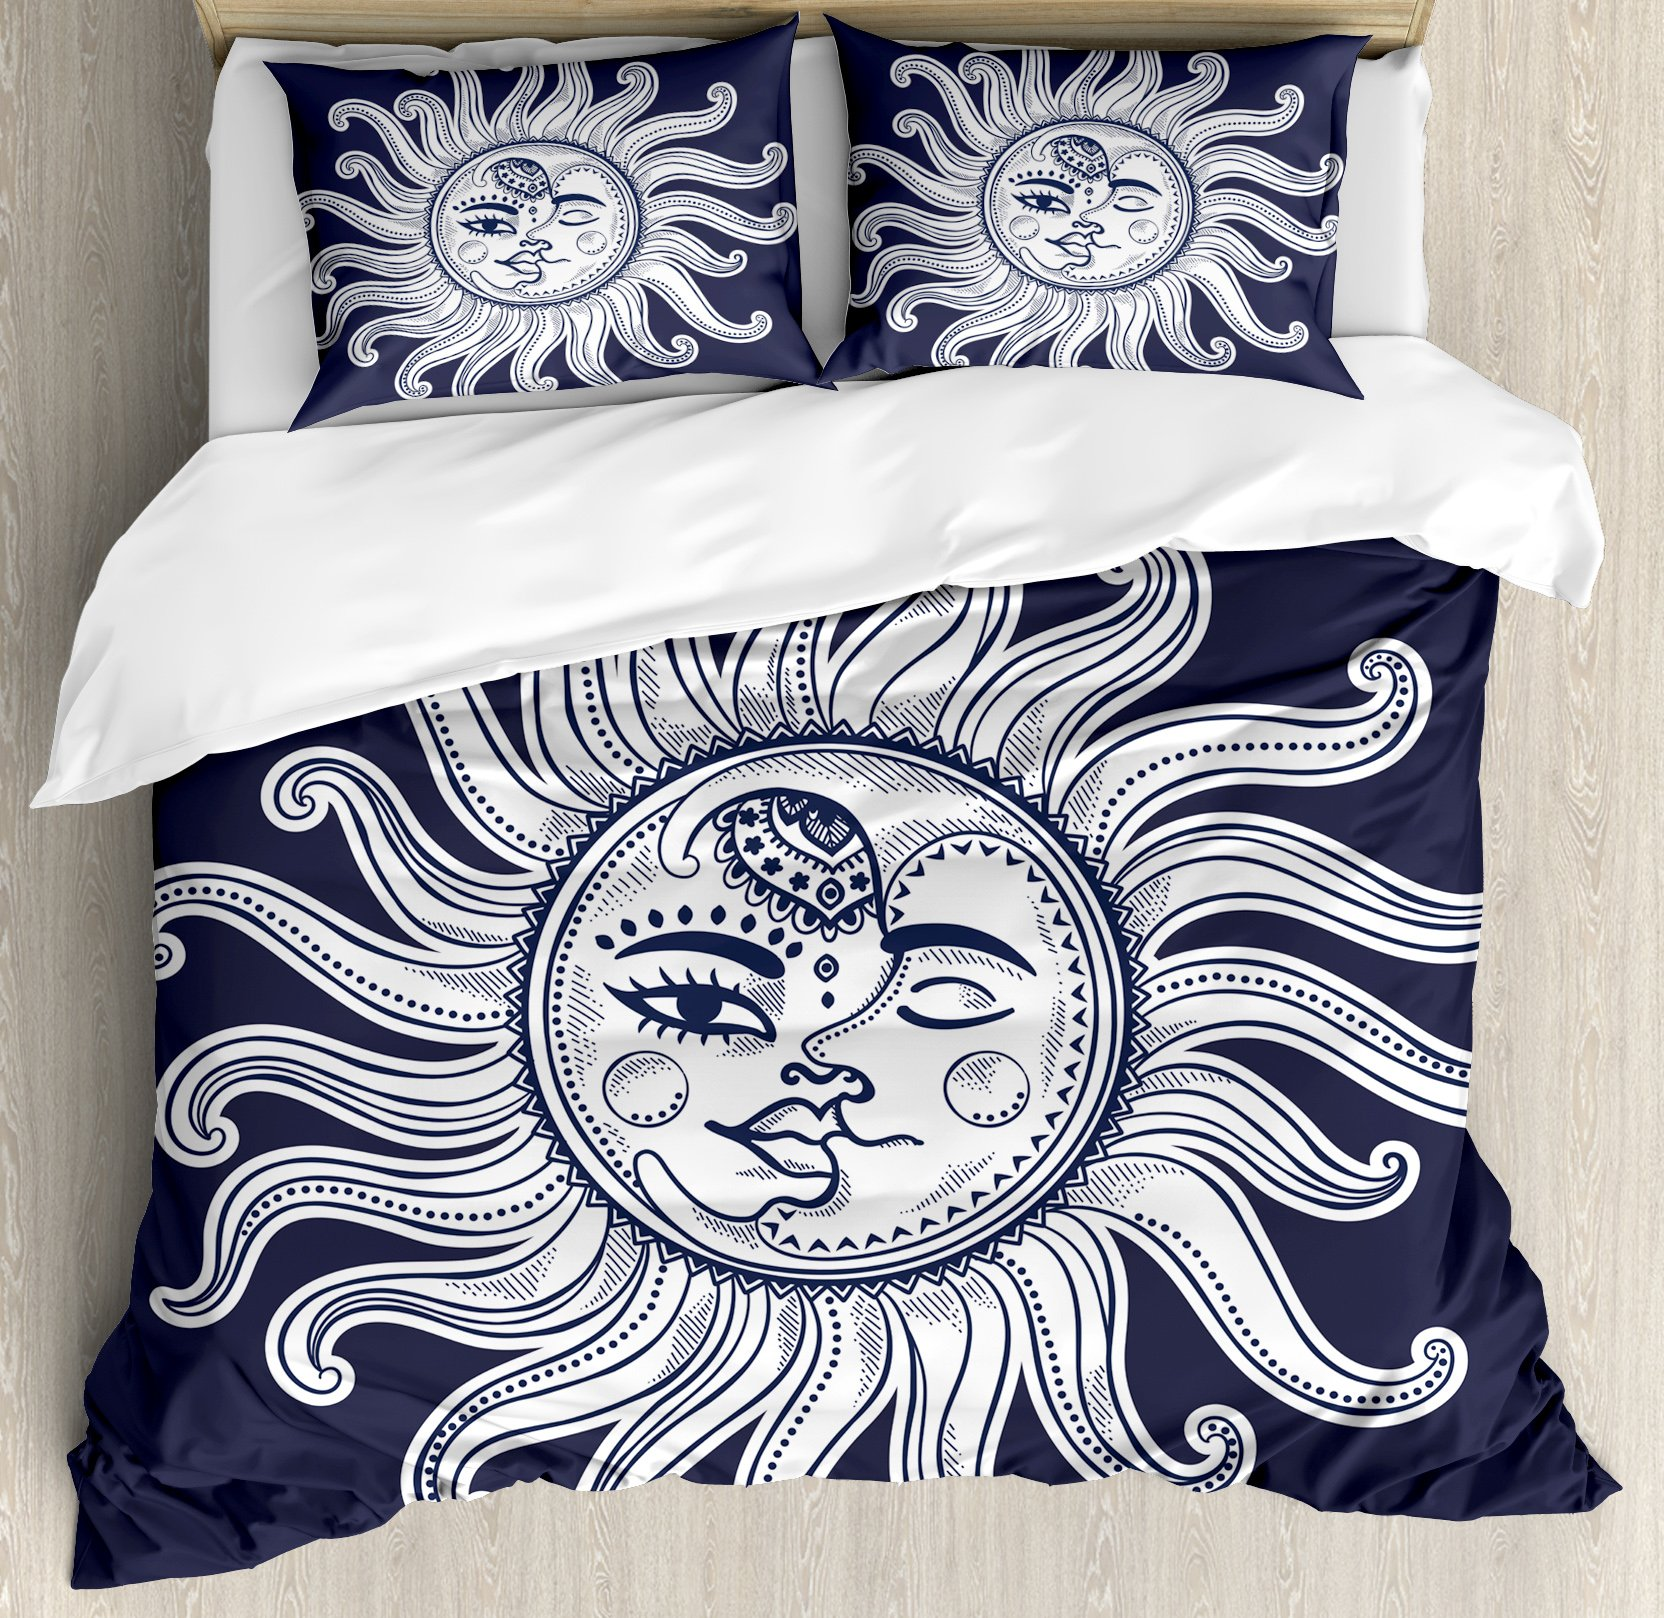 Sun and Moon Queen Size Duvet Cover Set by Ambesonne, Love and Romance in Sky Eclipse at Midnight Themed Folk Elements Vintage, Decorative 3 Piece Bedding Set with 2 Pillow Shams, Dark Blue White